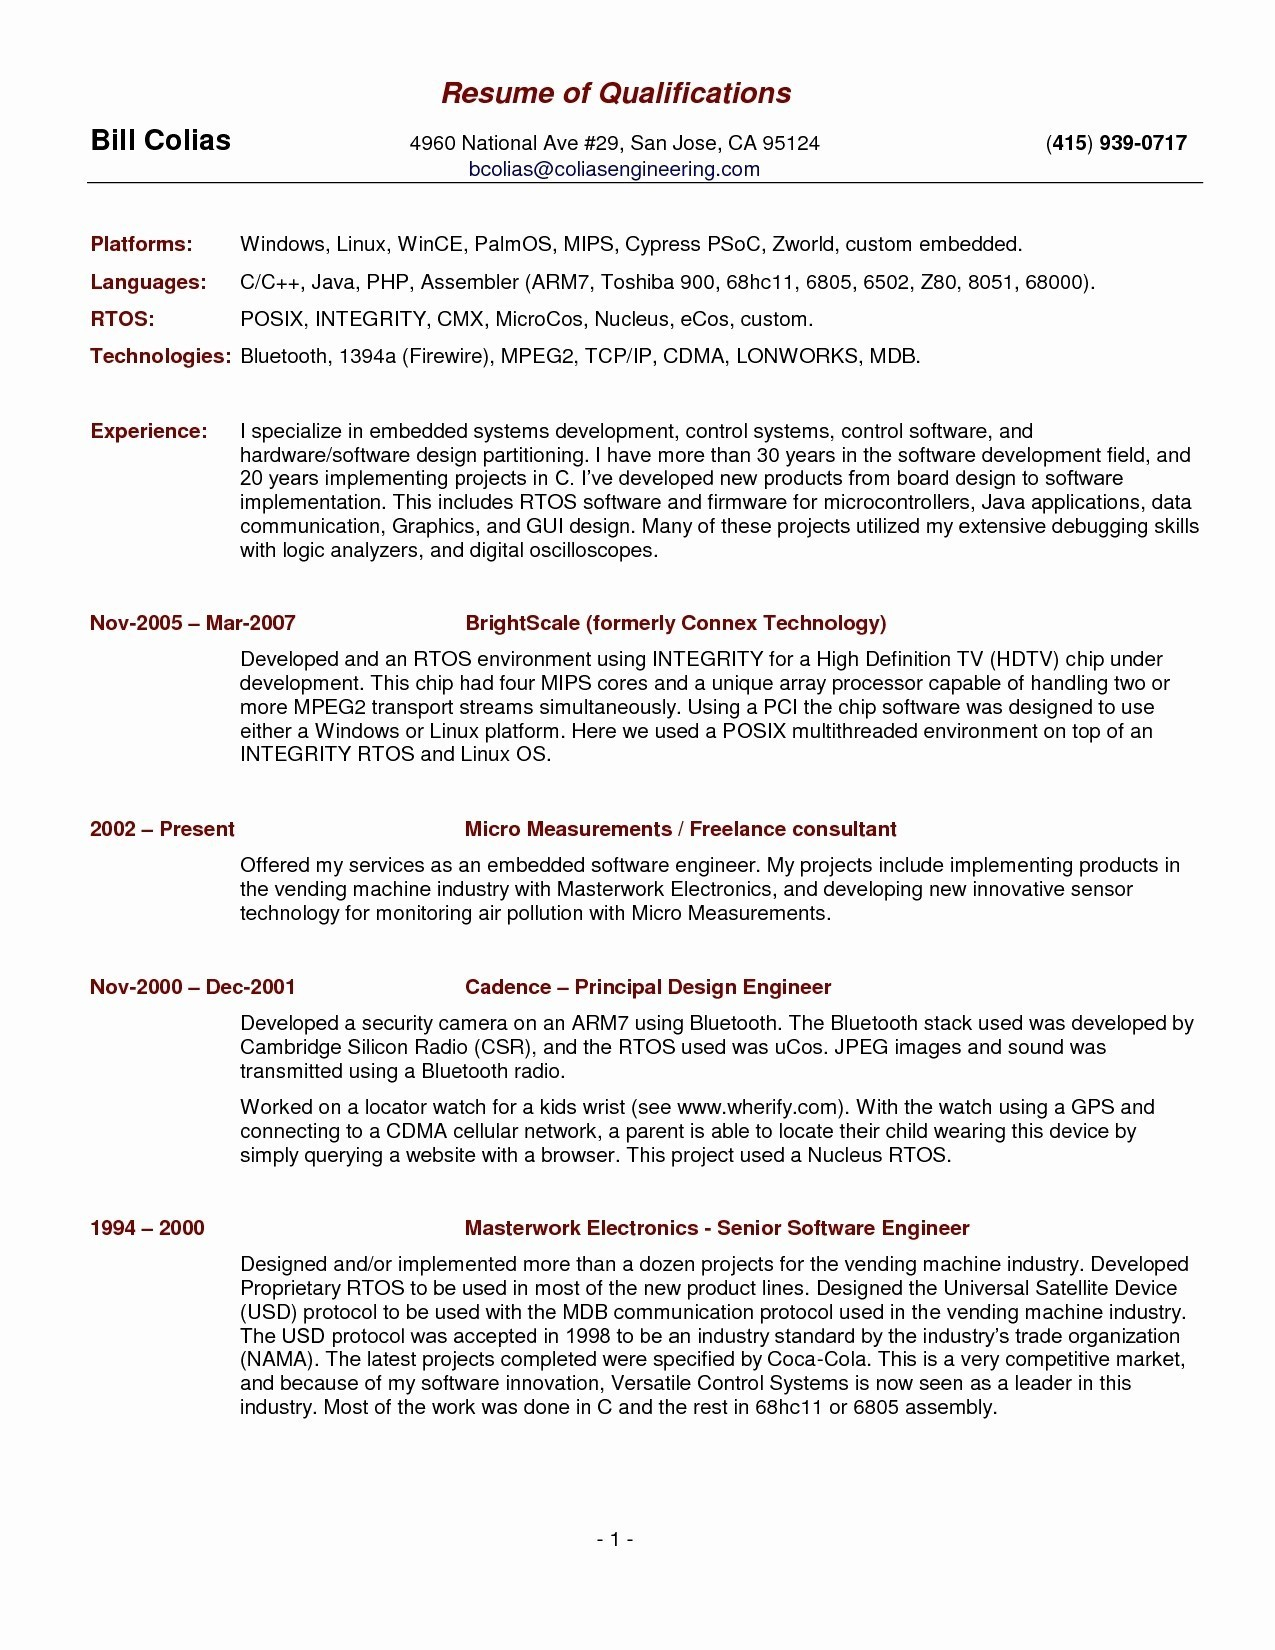 Teacher Resume Template - Free Resume Layout Beautiful Free Teacher Resume Templates Valid